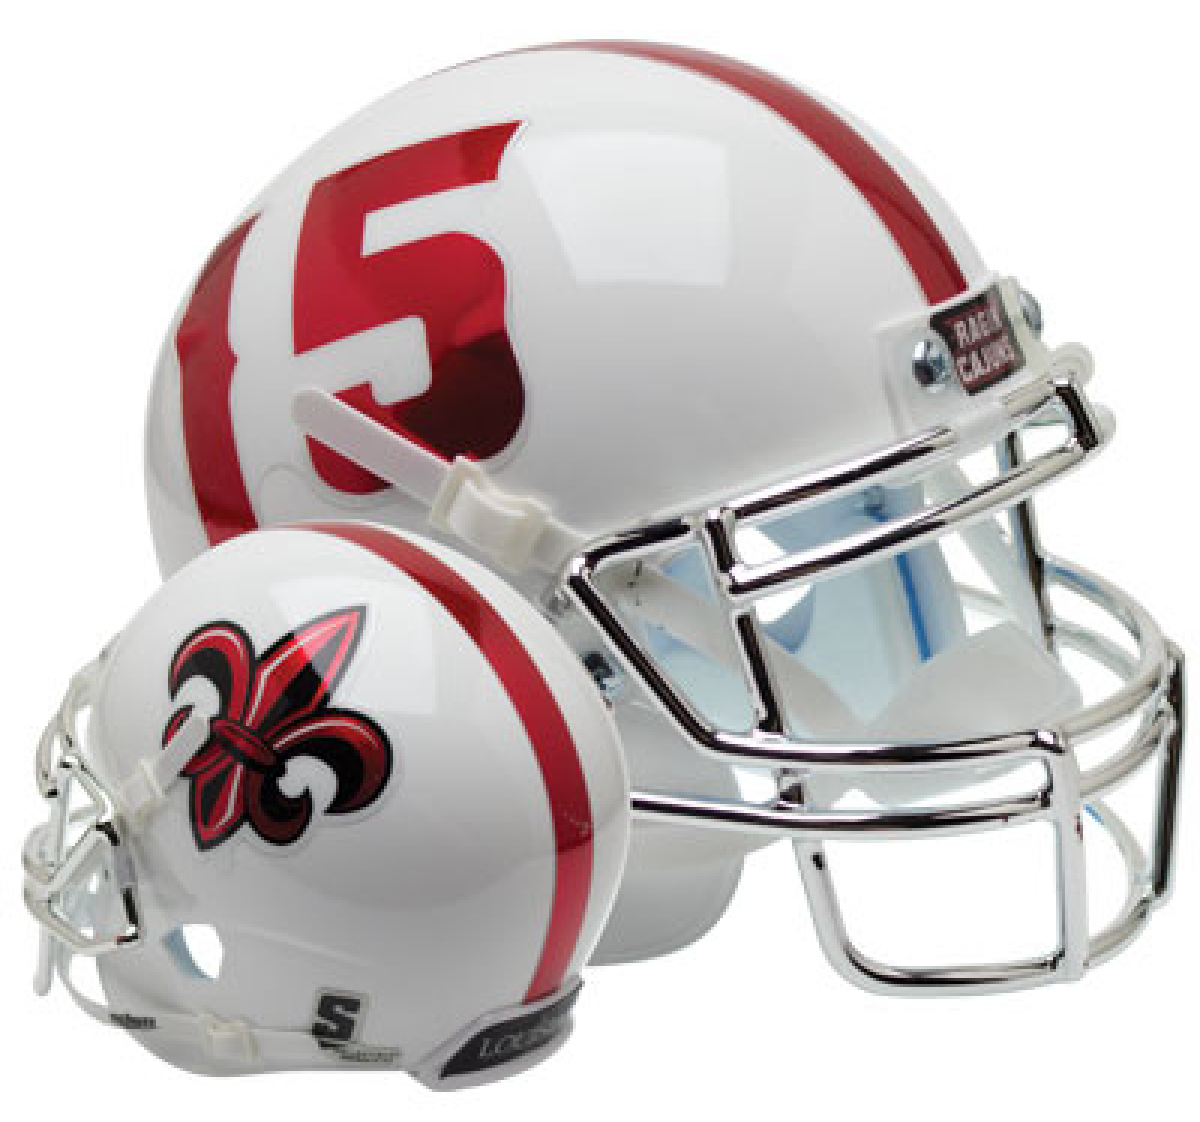 Louisiana (Lafayette) Ragin Cajuns Miniature Football Helmet Desk Caddy <B>White with Chrome Mask</B>